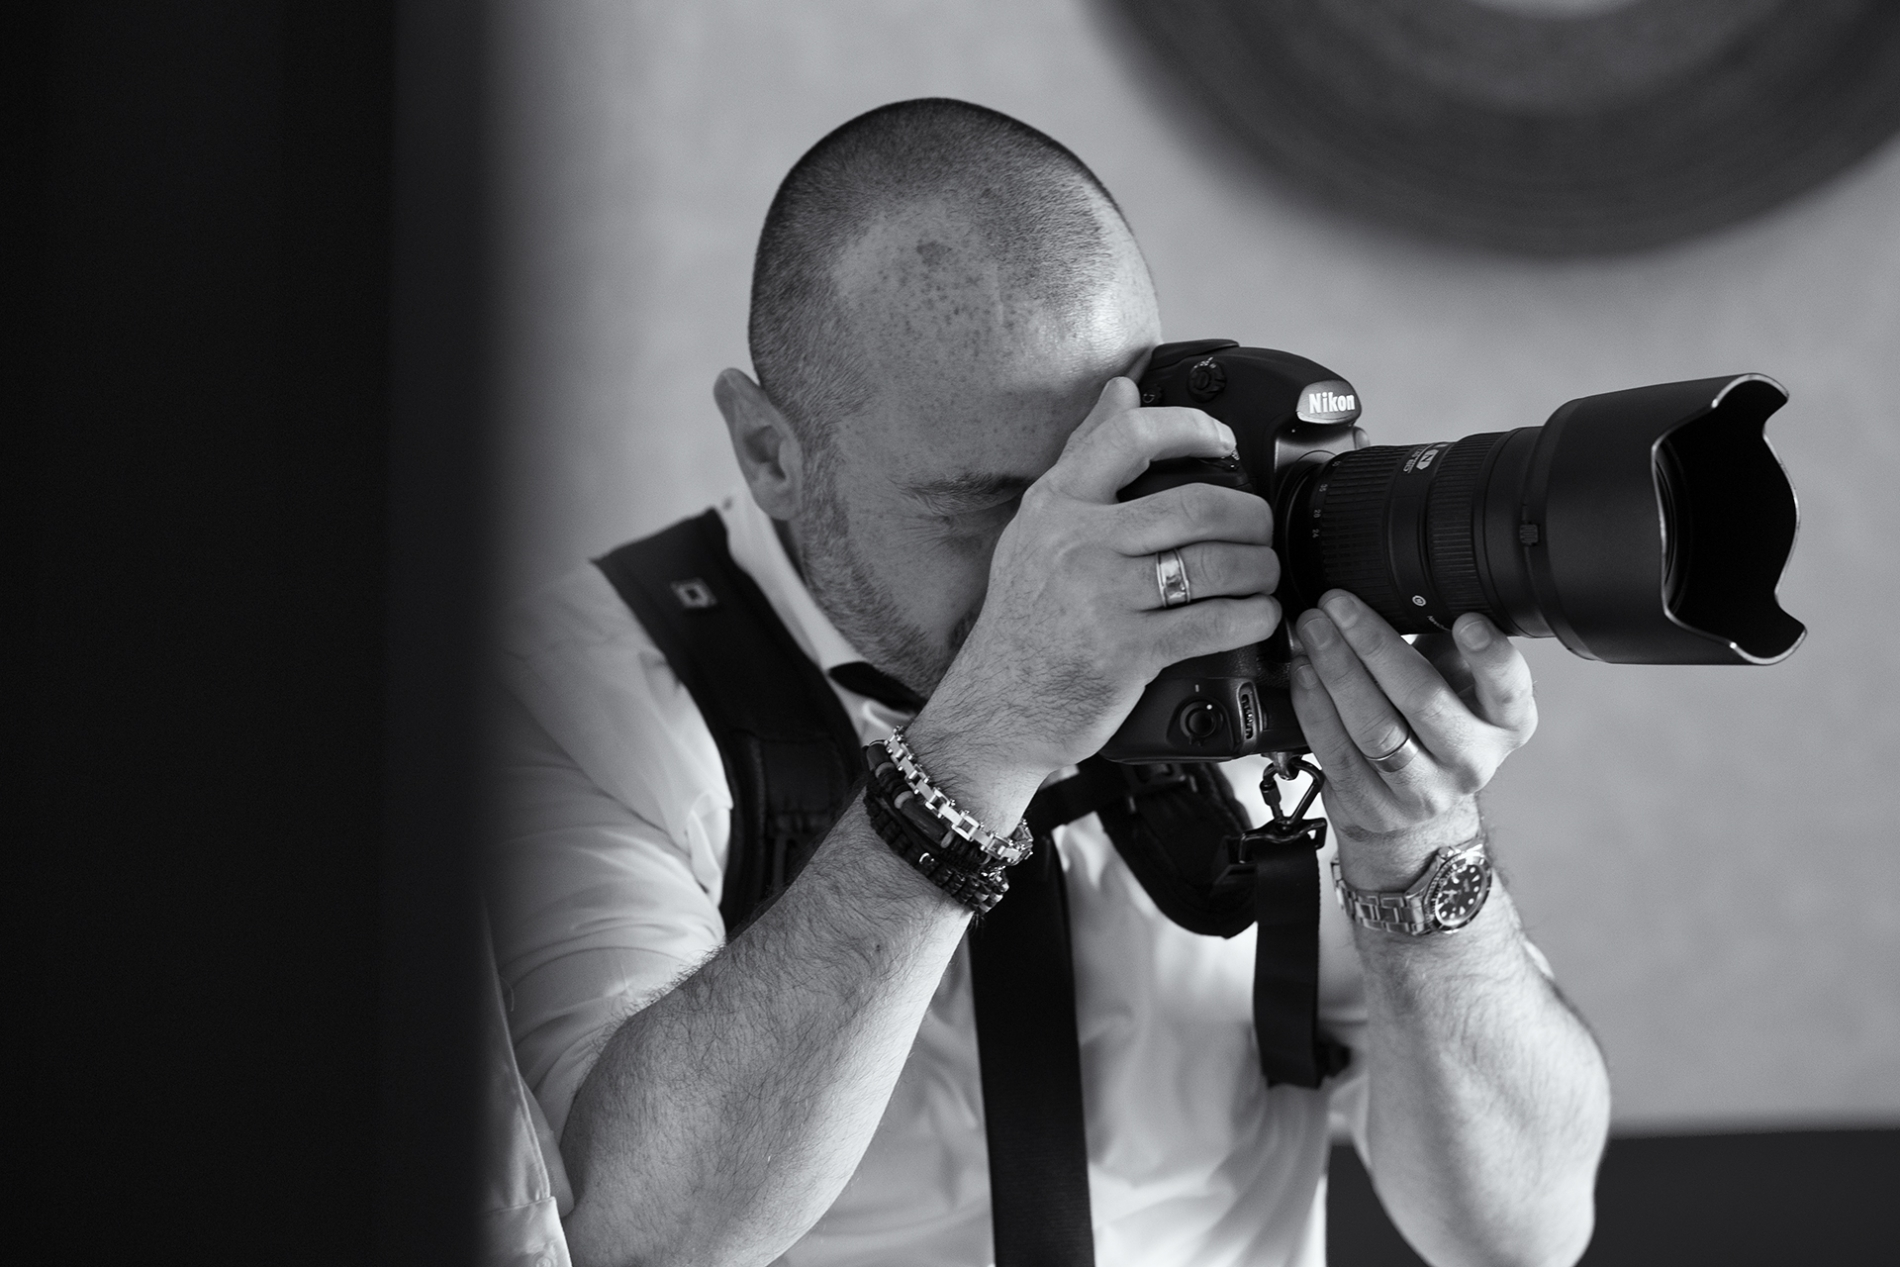 Arezzo wedding photographer at work with camera in Tuscany